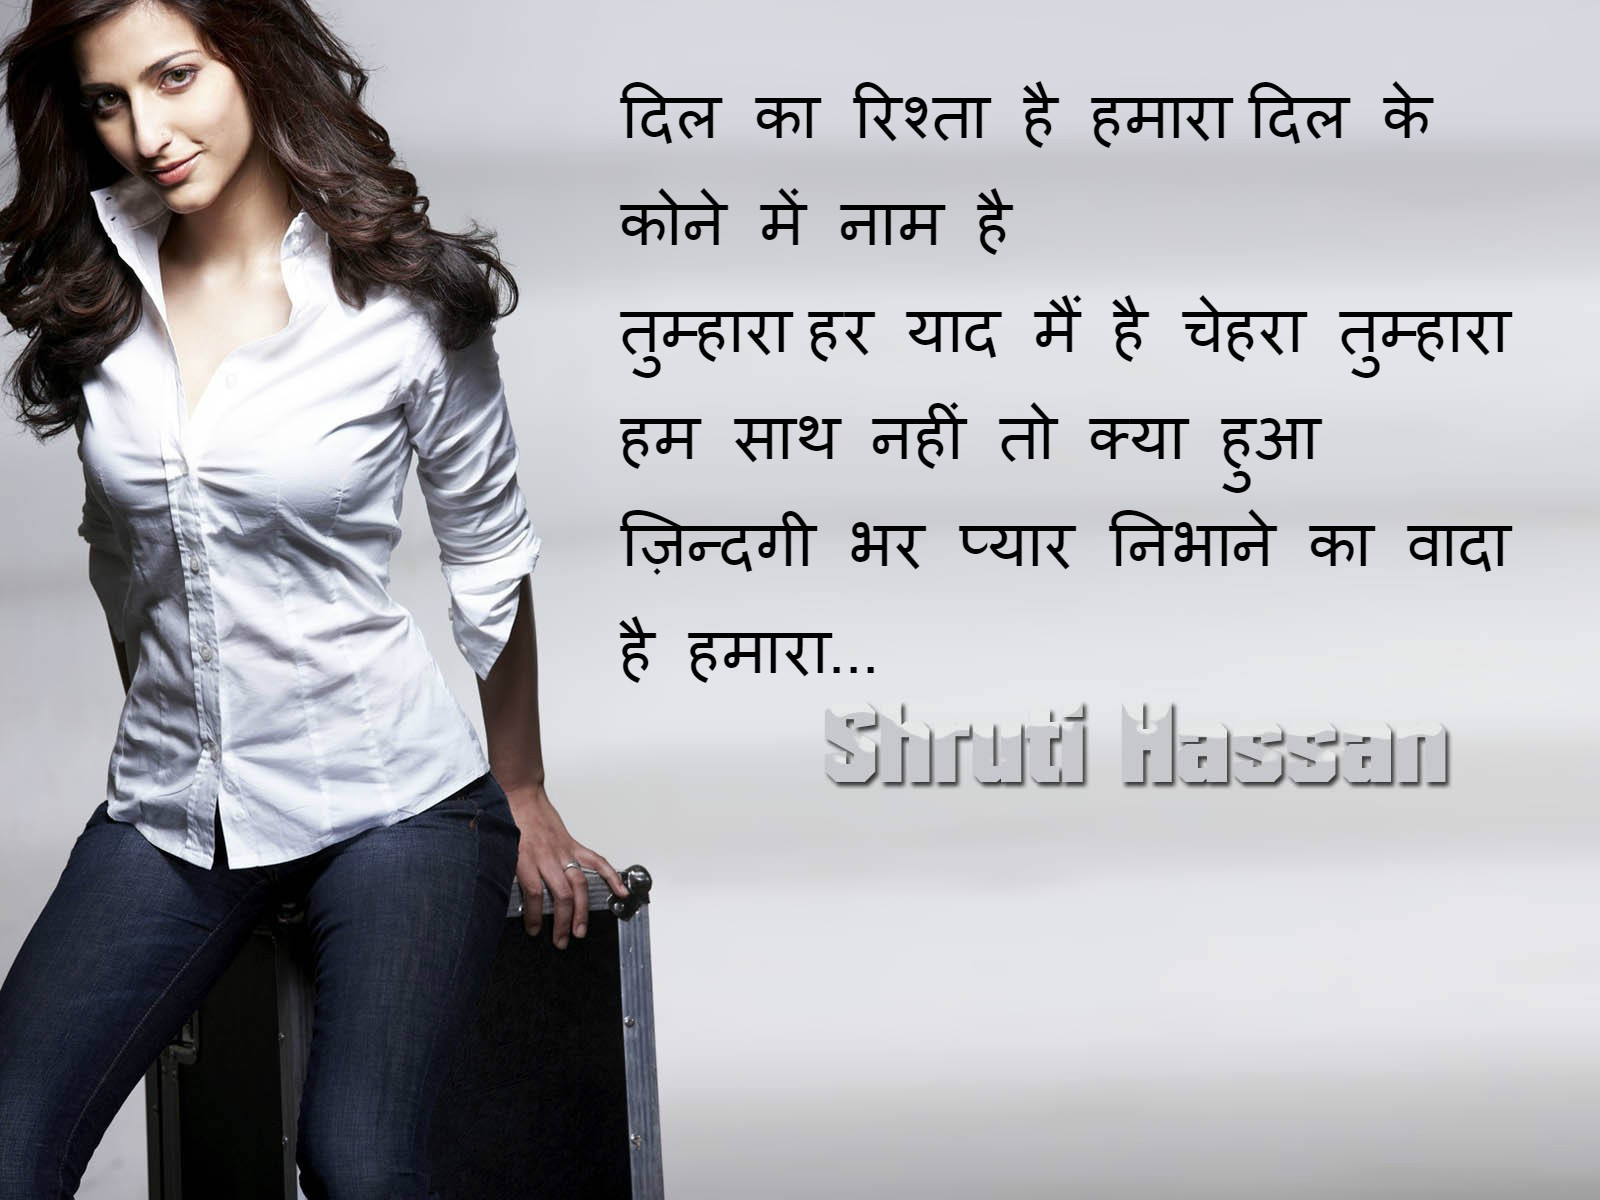 Wallpaper download love shayri - Free Shayari Android Mobile Sms Hindi Shayari Download Mobile Image Hindi Shayari Wallpaper Download Free Hindi Shayari Download Hd Image Love Shayari In